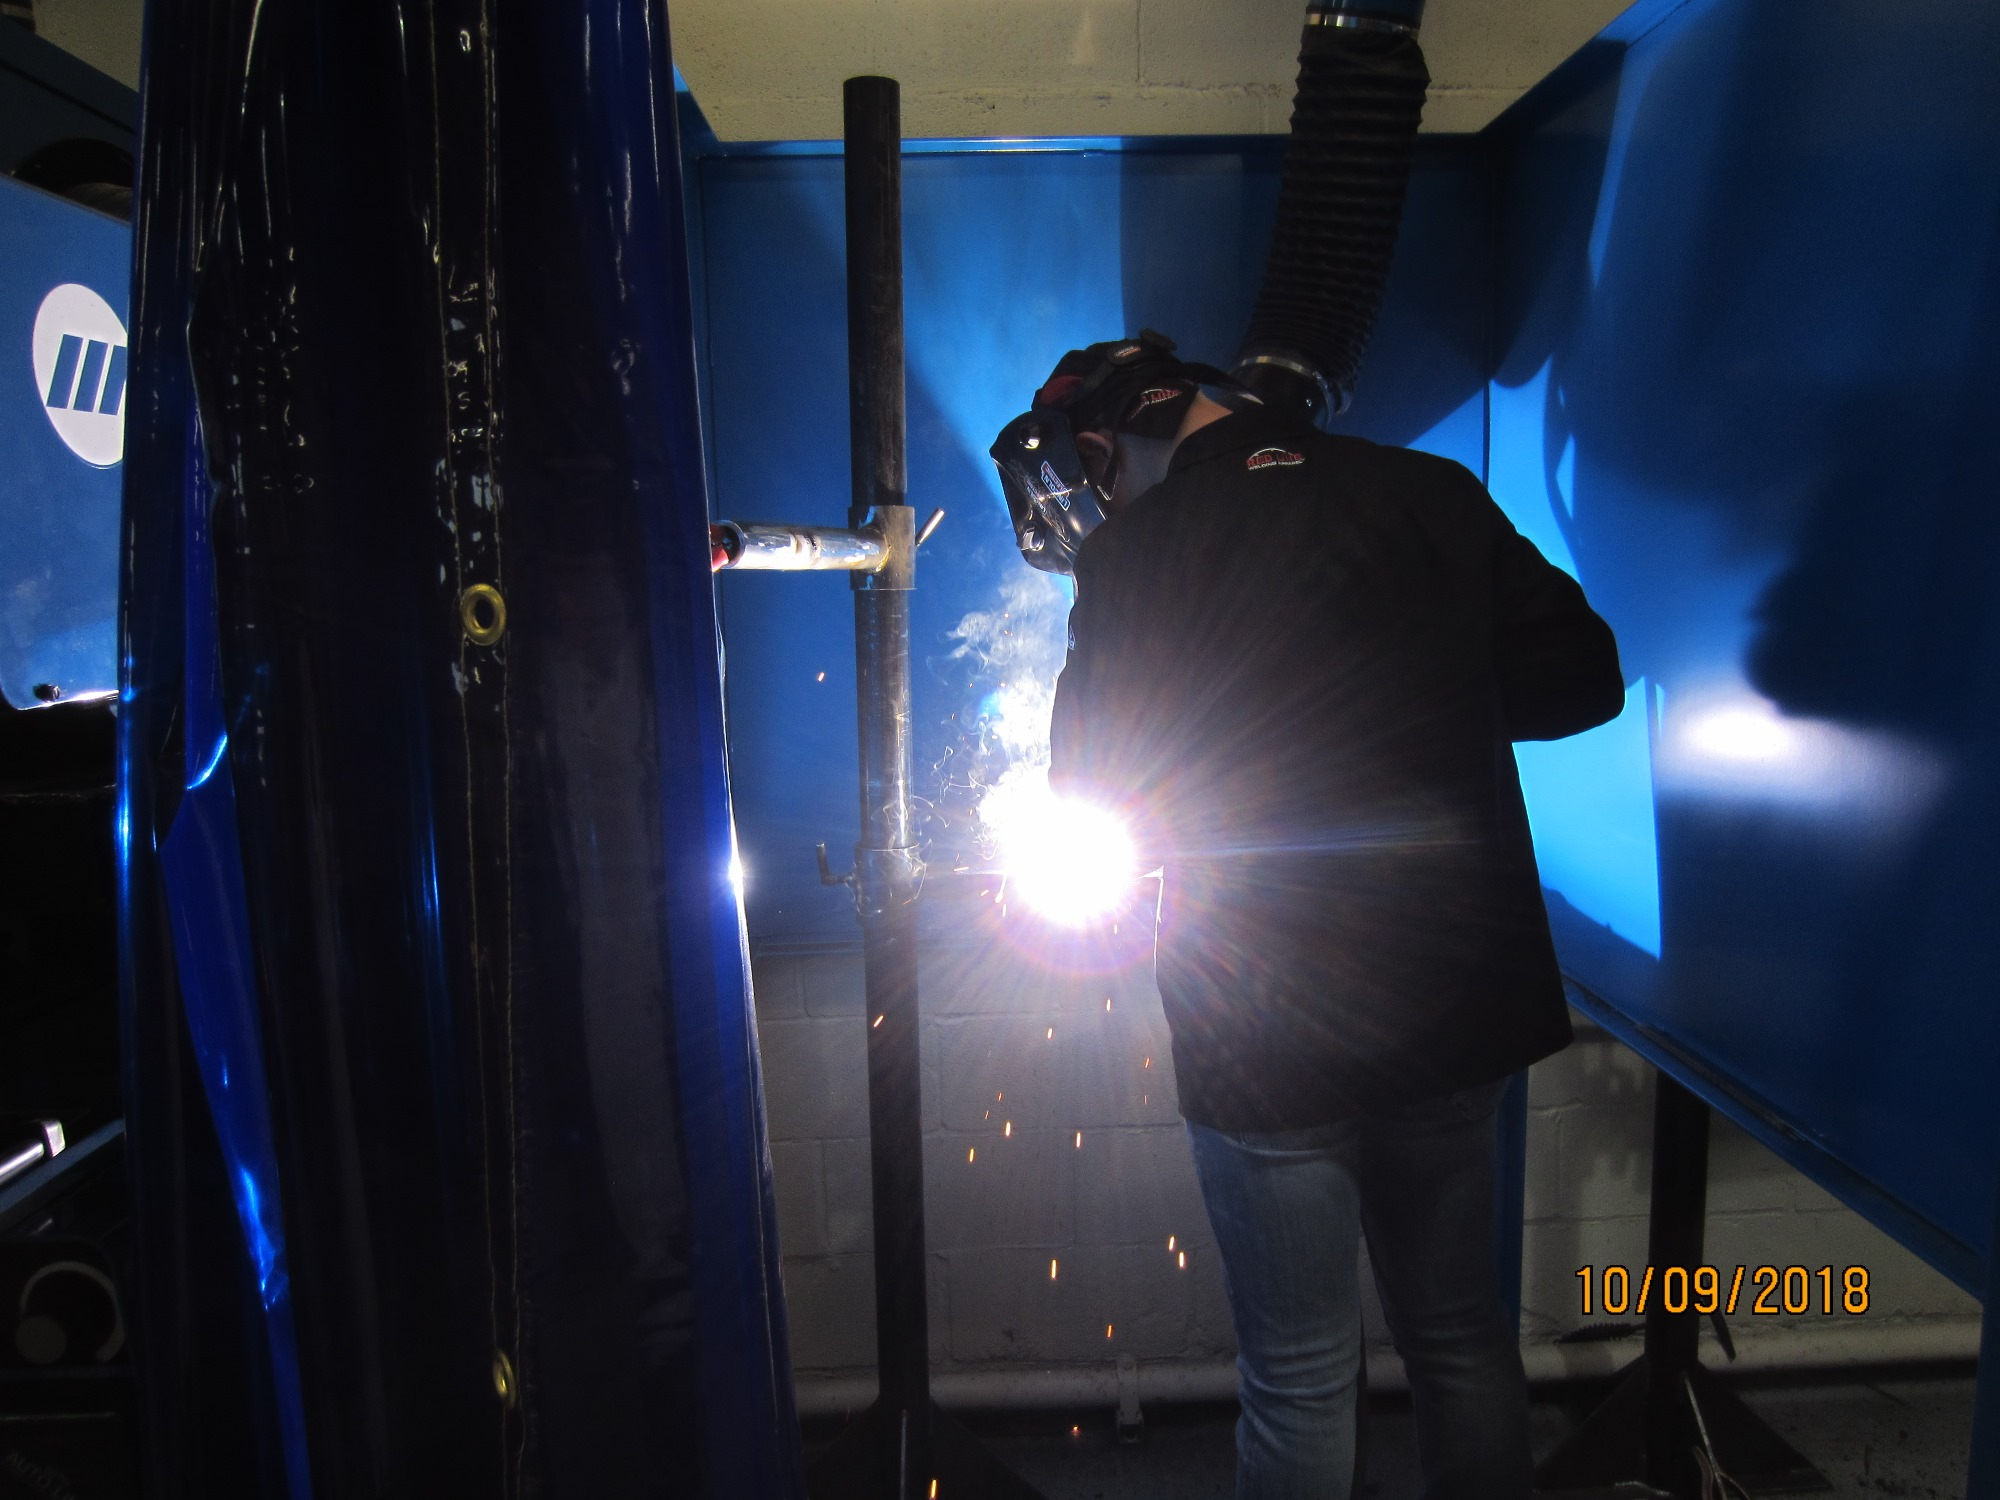 welding behind protective screens